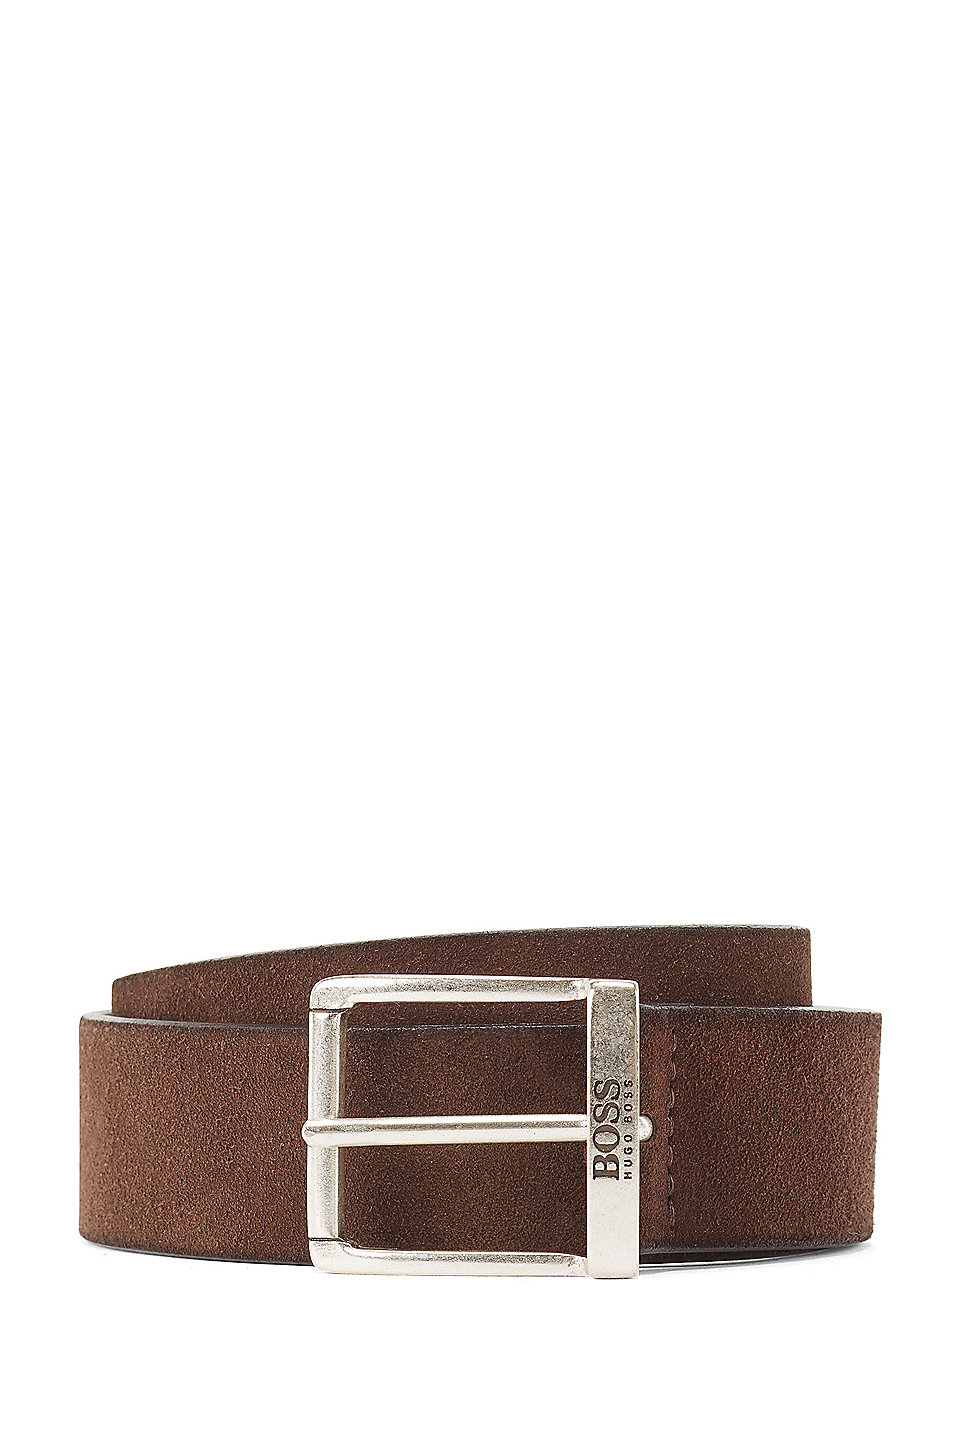 Suede Belt With A Washed Effect And Antique Hardware by Boss